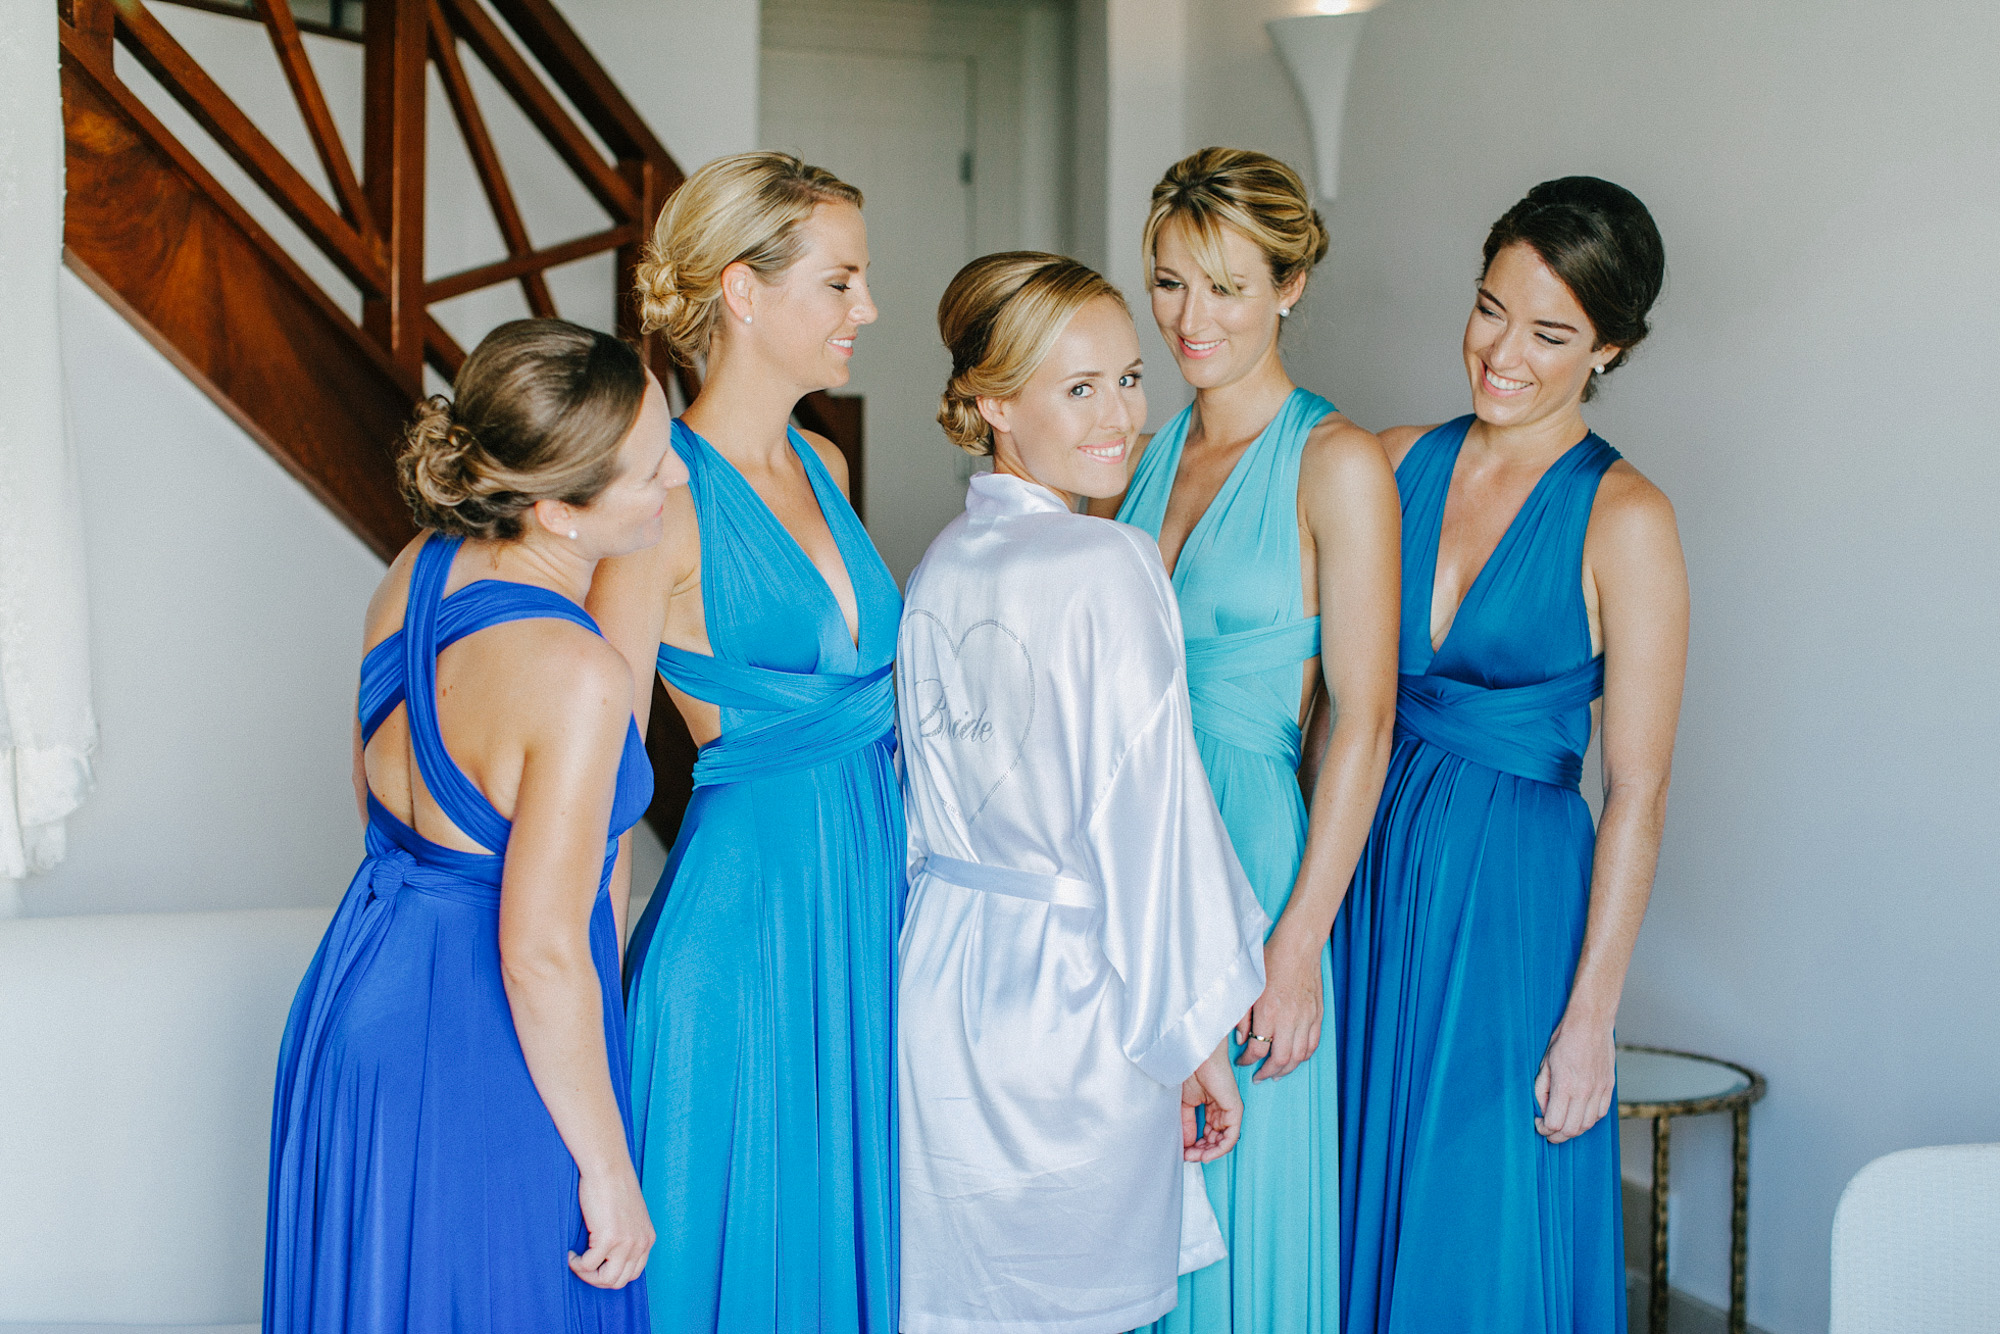 Professional portrait of four bridesmaids looking at the bride during bridal preparations in Caramel luxury hotel, they're wearing mismatched blue dresses, bride is looking at the wedding photographer smiling.